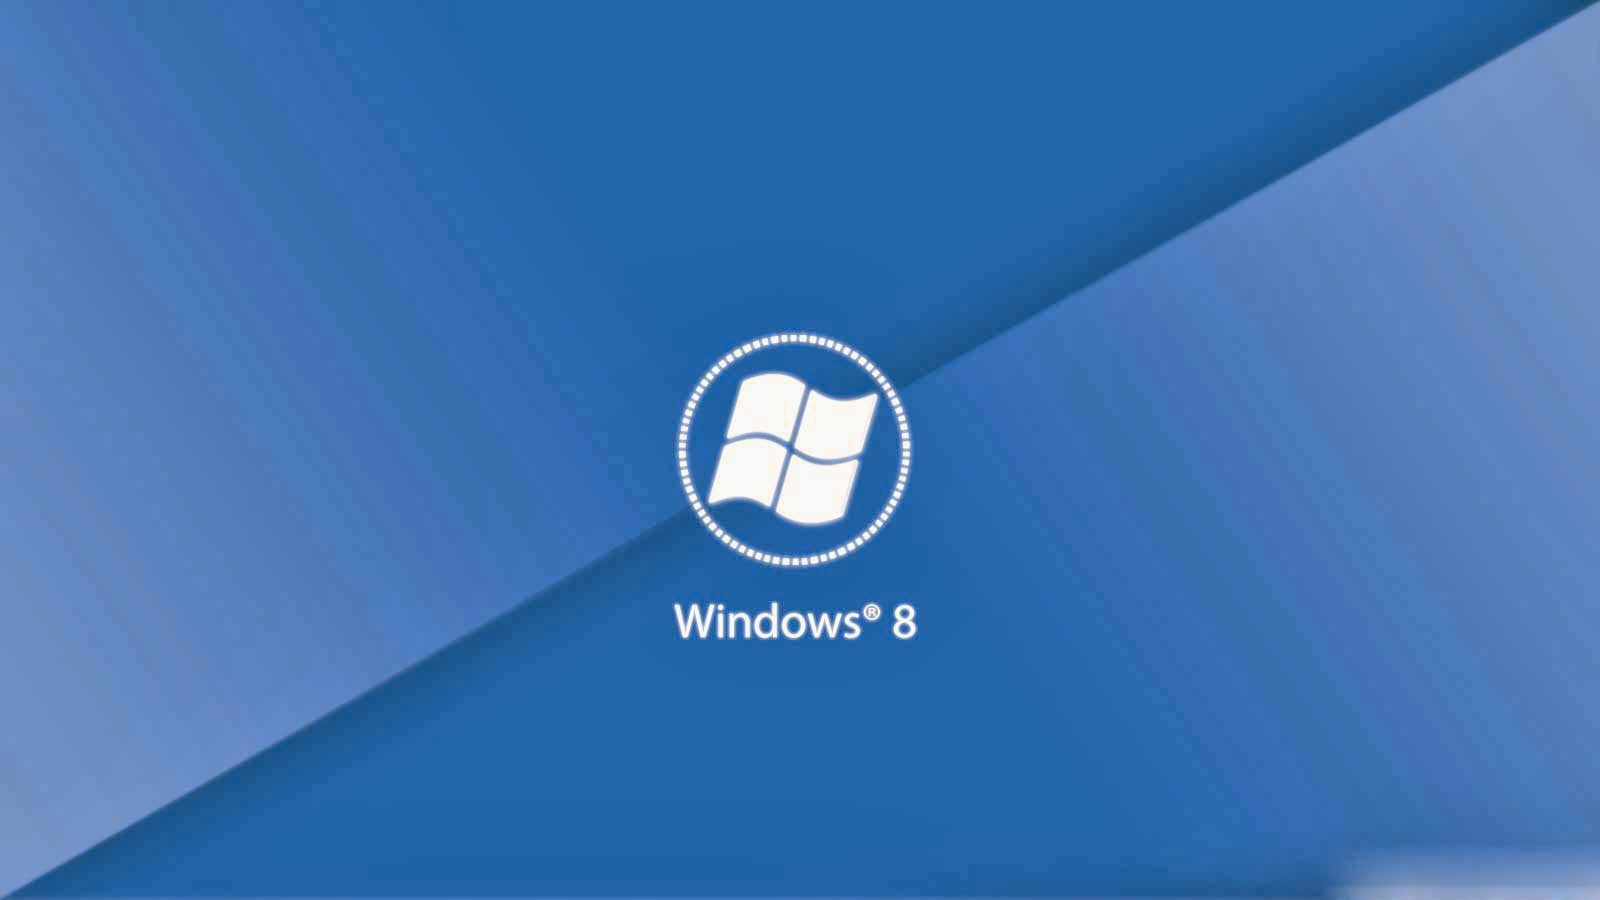 Windows 8 New theme Wallpaper | Windows 8 Theme